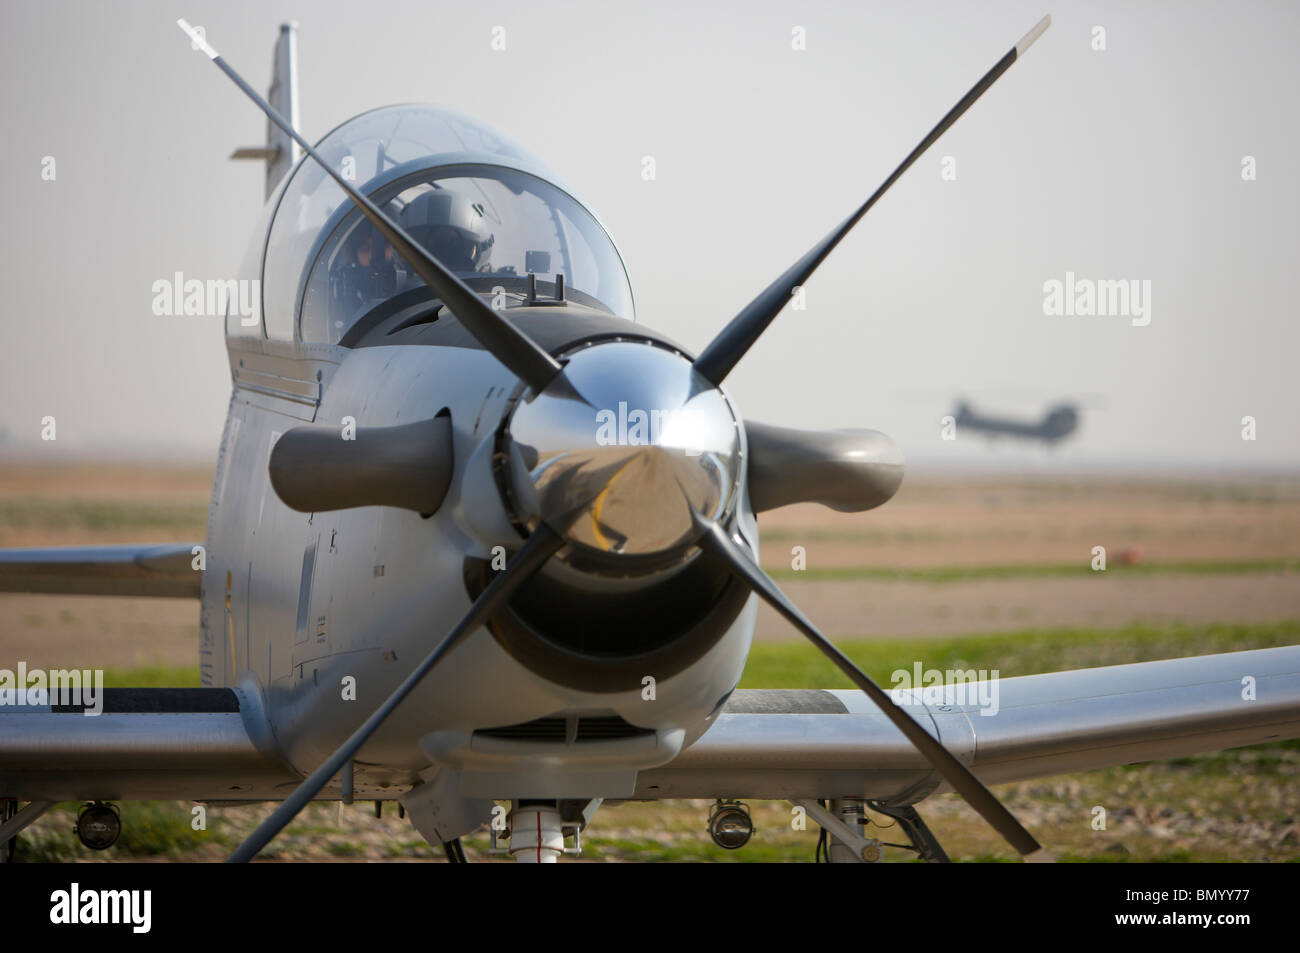 Camp Speicher, Iraq - U.S. Air Force pilots in an Iraqi Air Force T-6 Texan trainer aircraft. - Stock Image